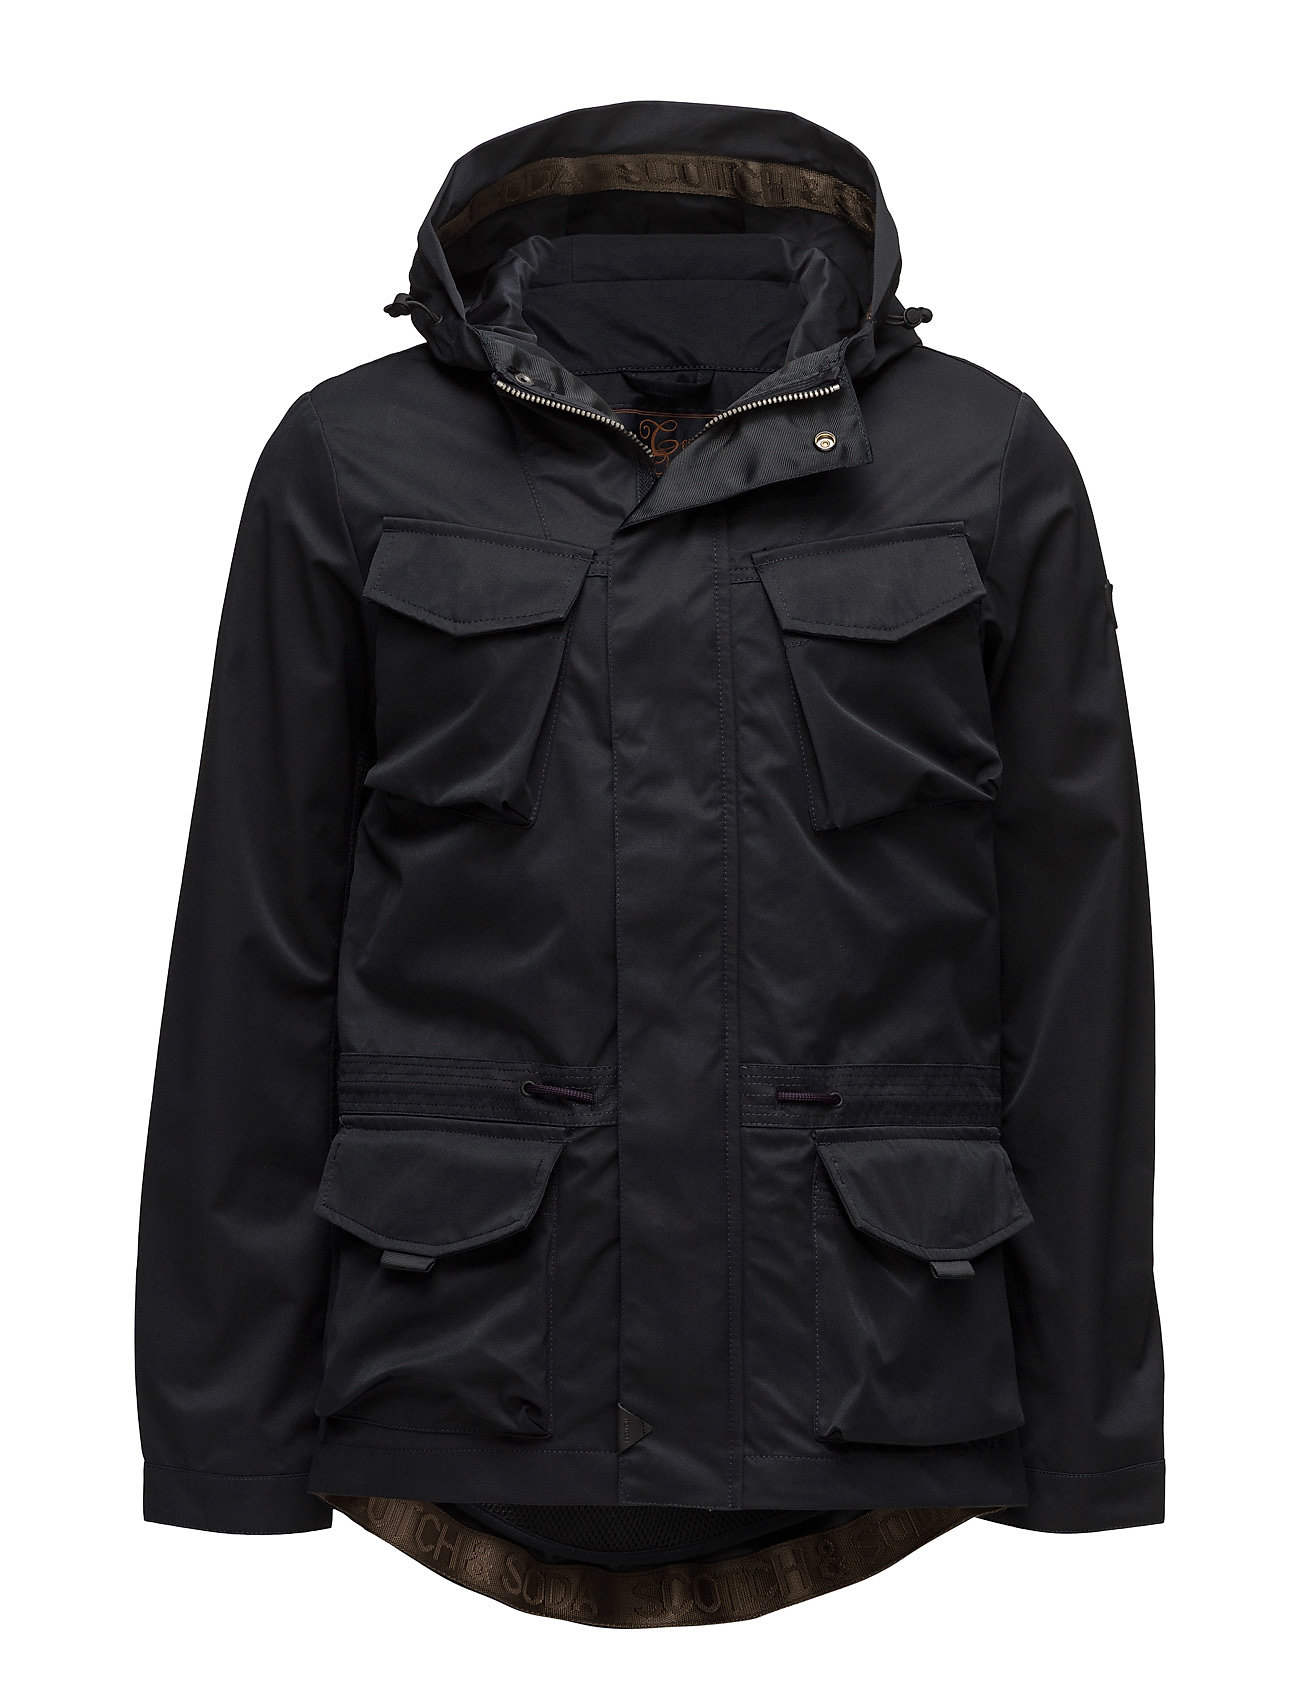 scotch & soda Hooded jacket in technical quality with mesh lining fra boozt.com dk